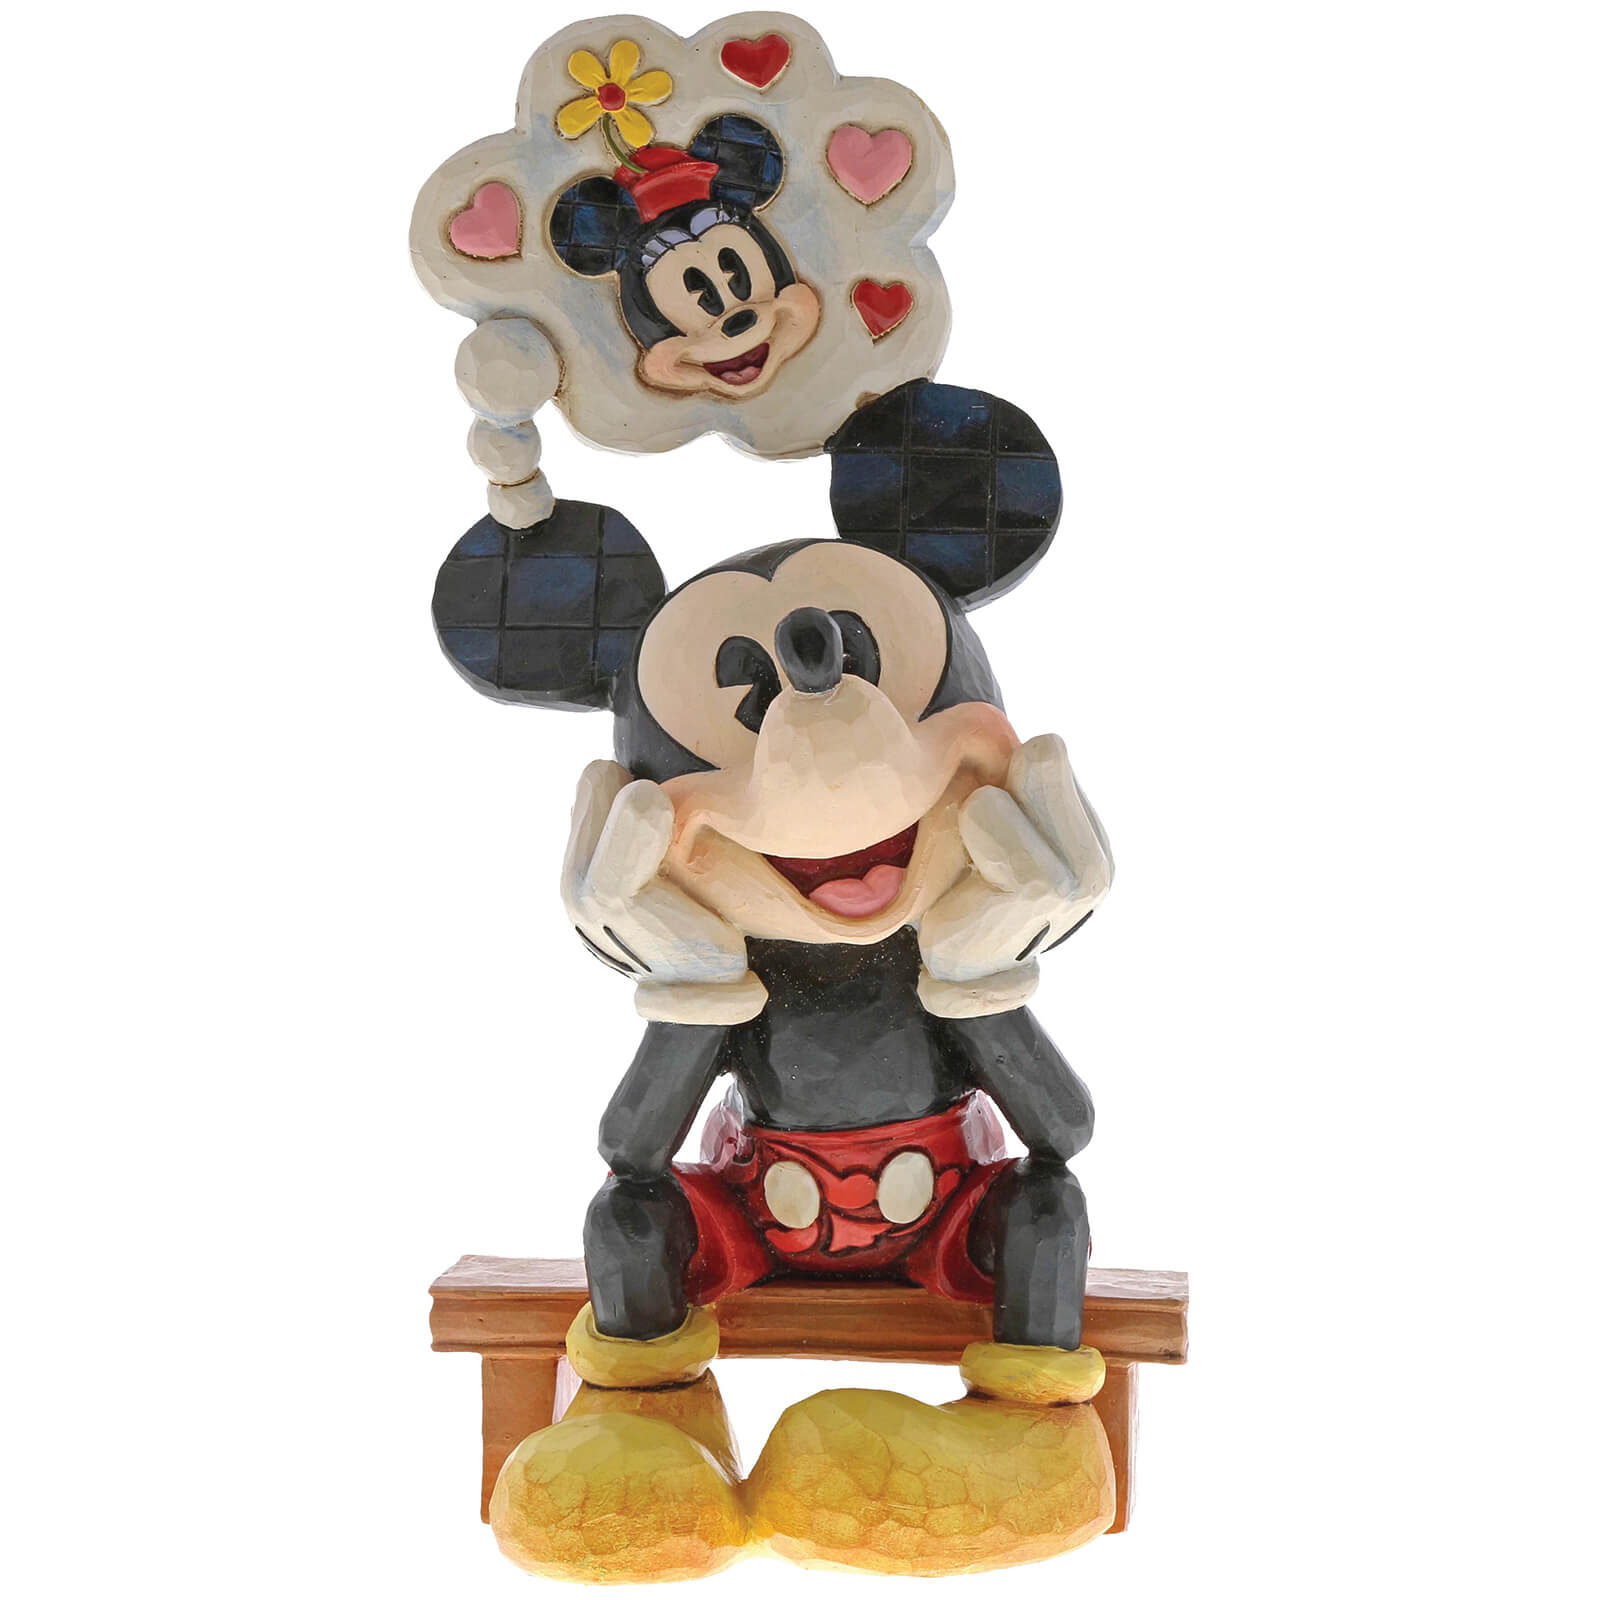 Image of Disney Traditions Thinking of You (Mickey Mouse with Thought Figurine) 15.5cm